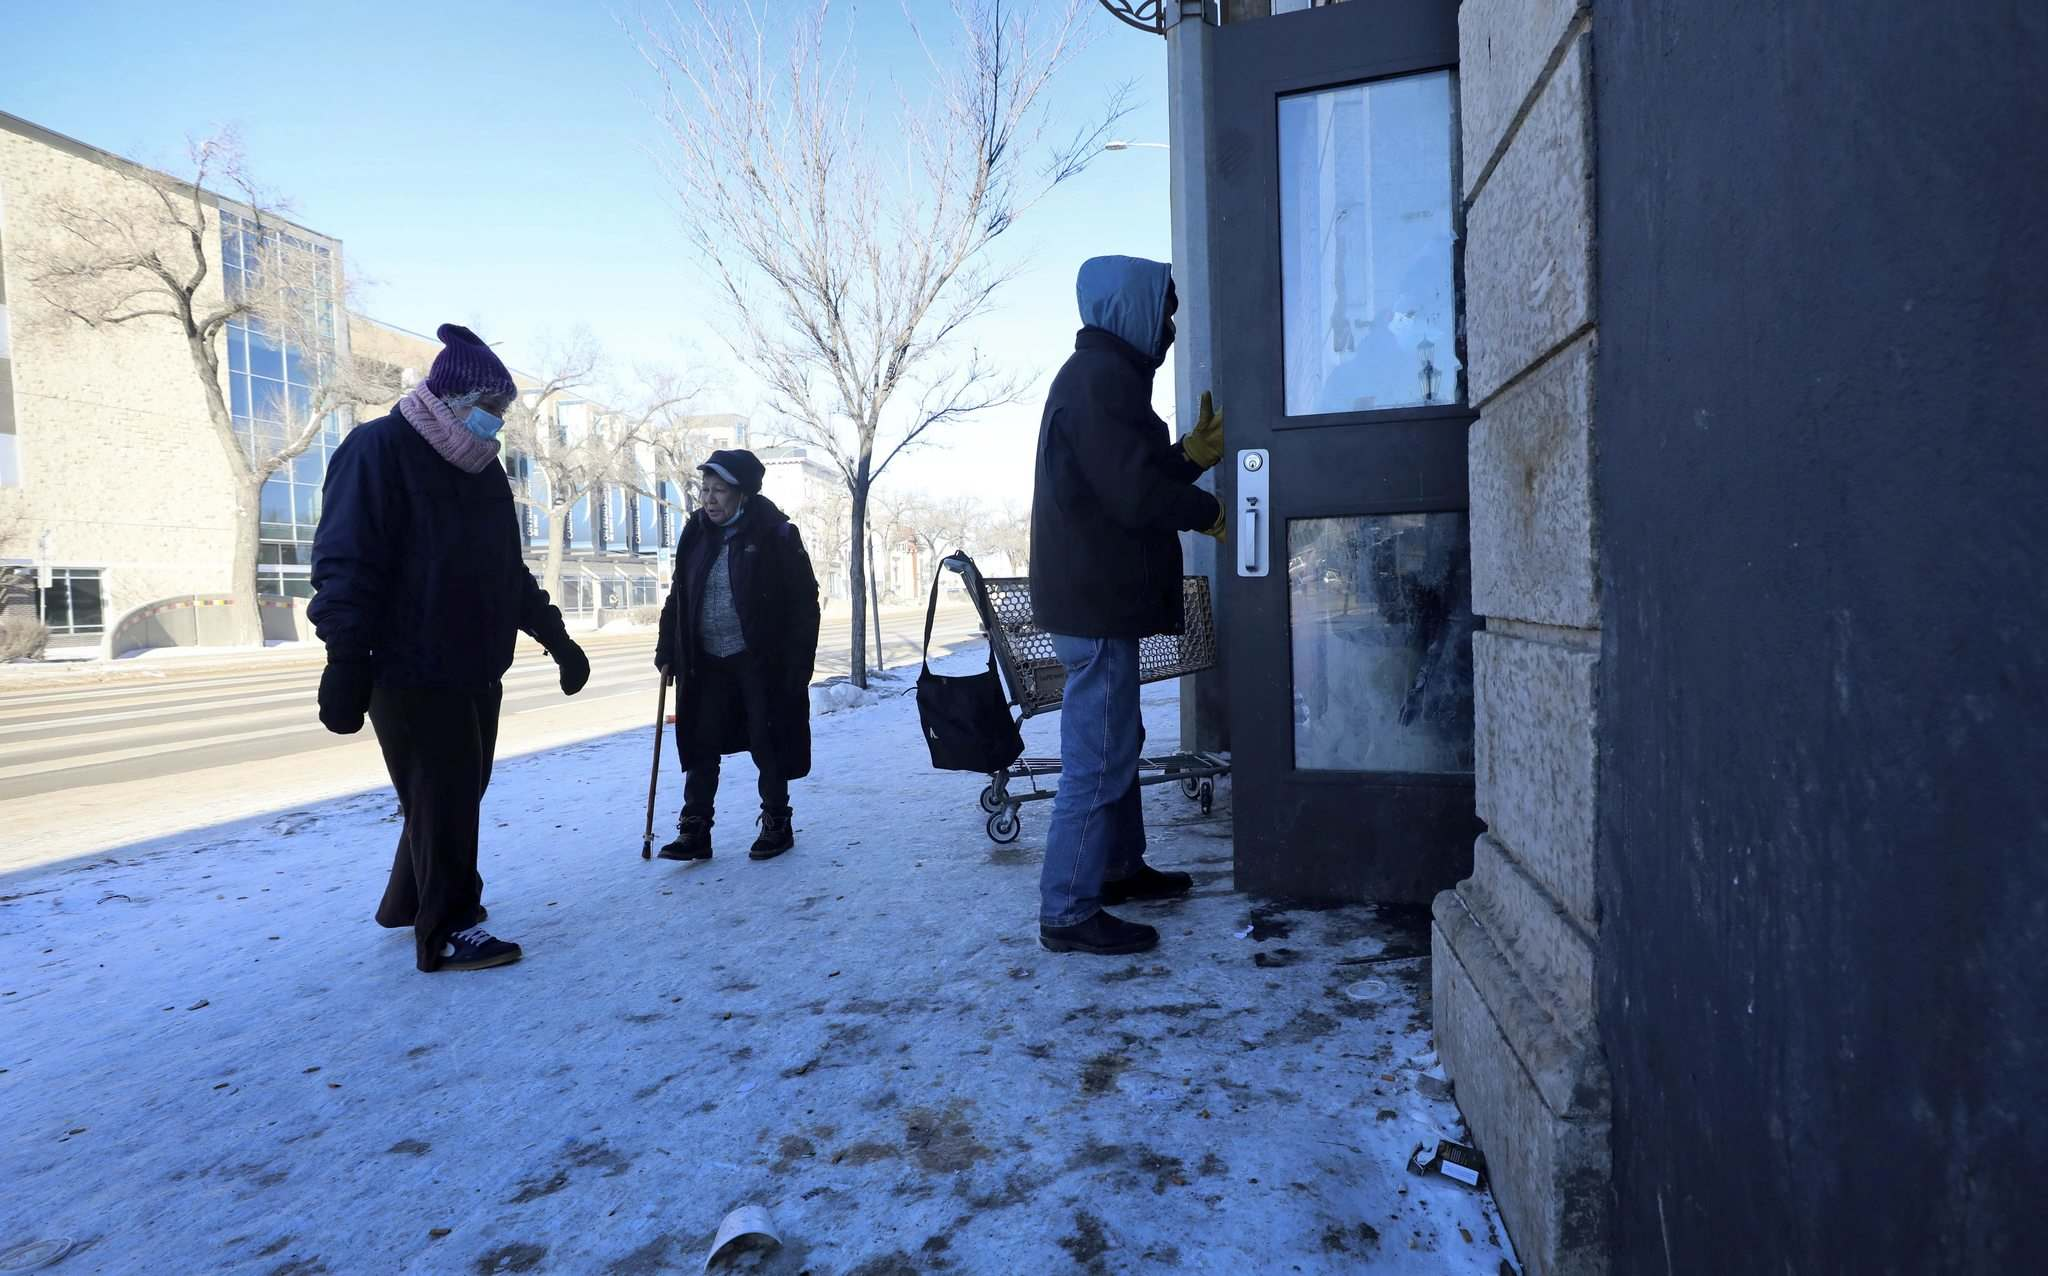 People seek shelter at Main Street Project from the extreme cold temperatures Tuesday.